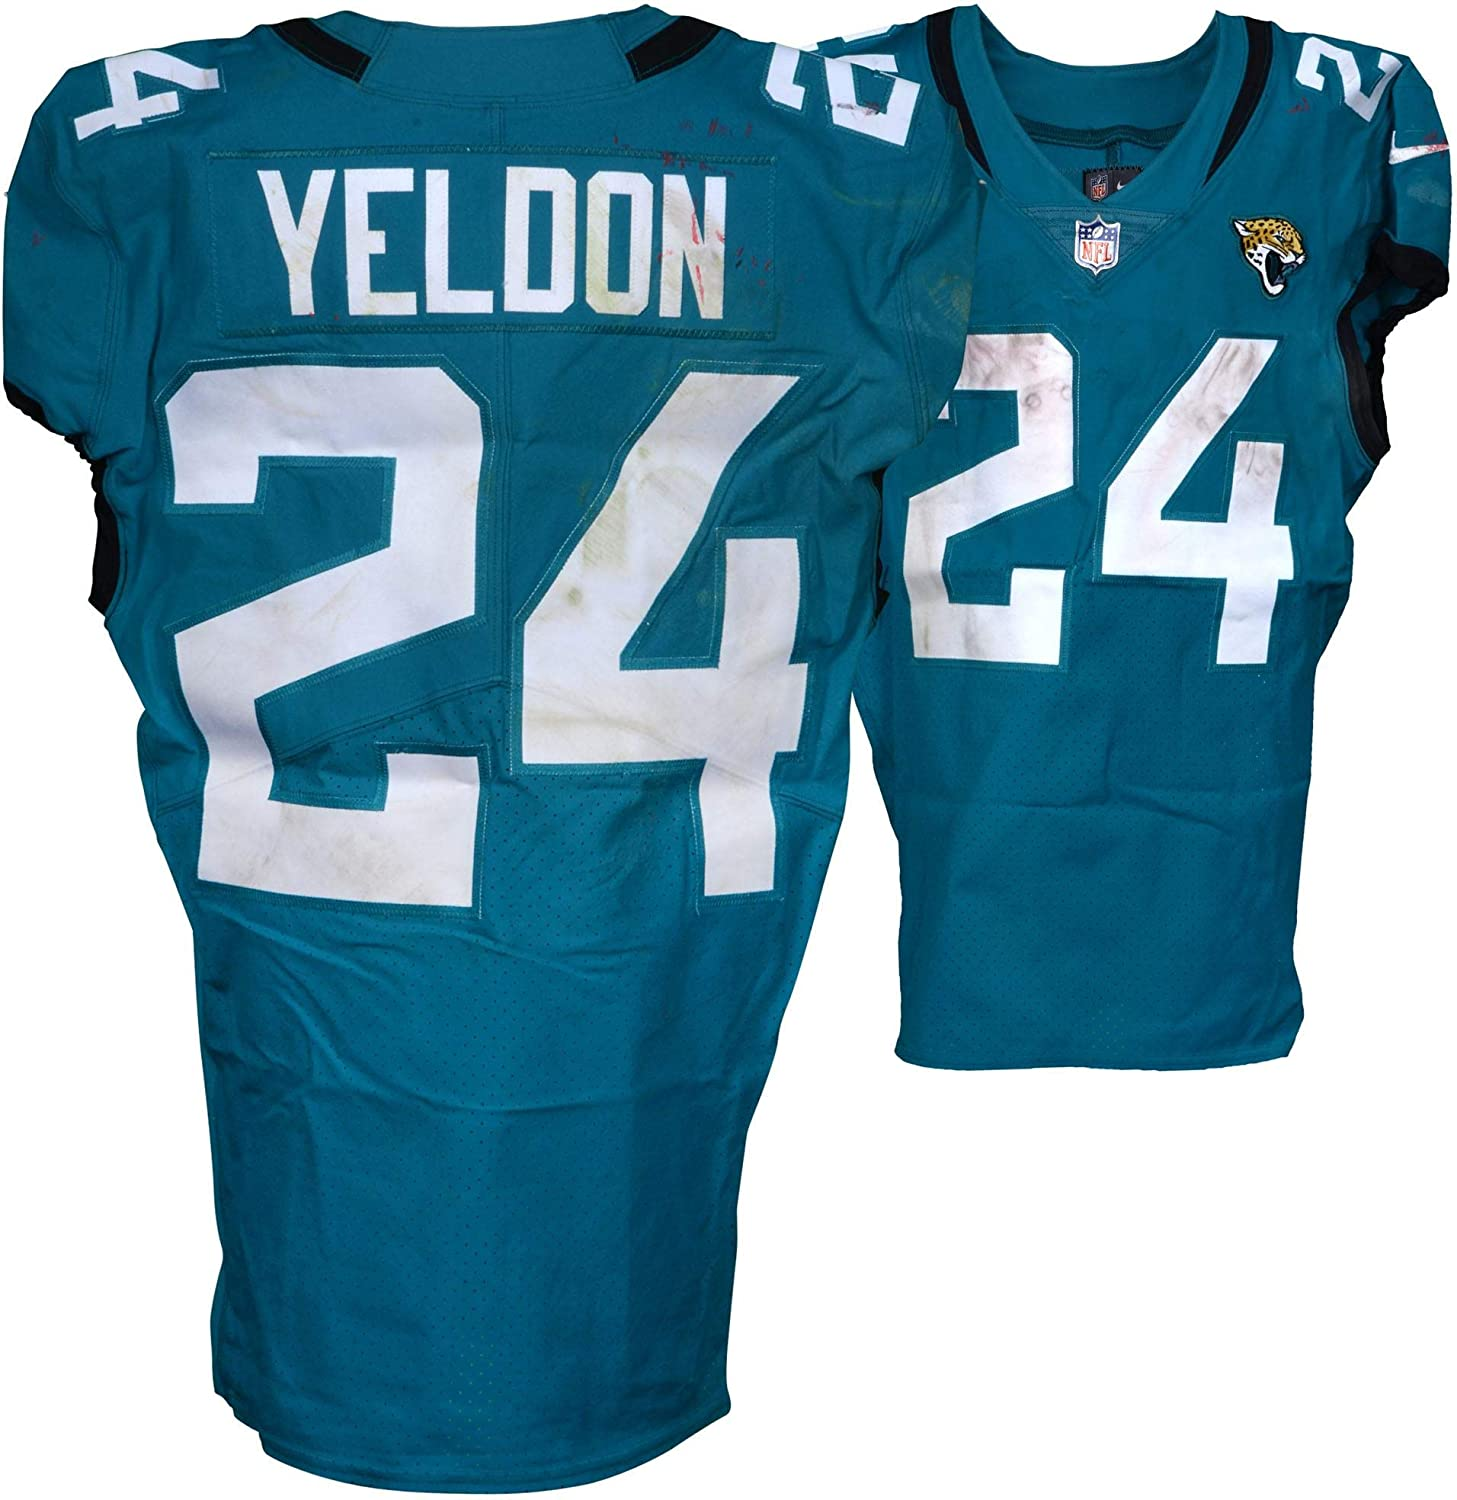 cheap for discount b280d 165bb T.J. Yeldon Jacksonville Jaguars Game-Used #24 Teal Jersey ...